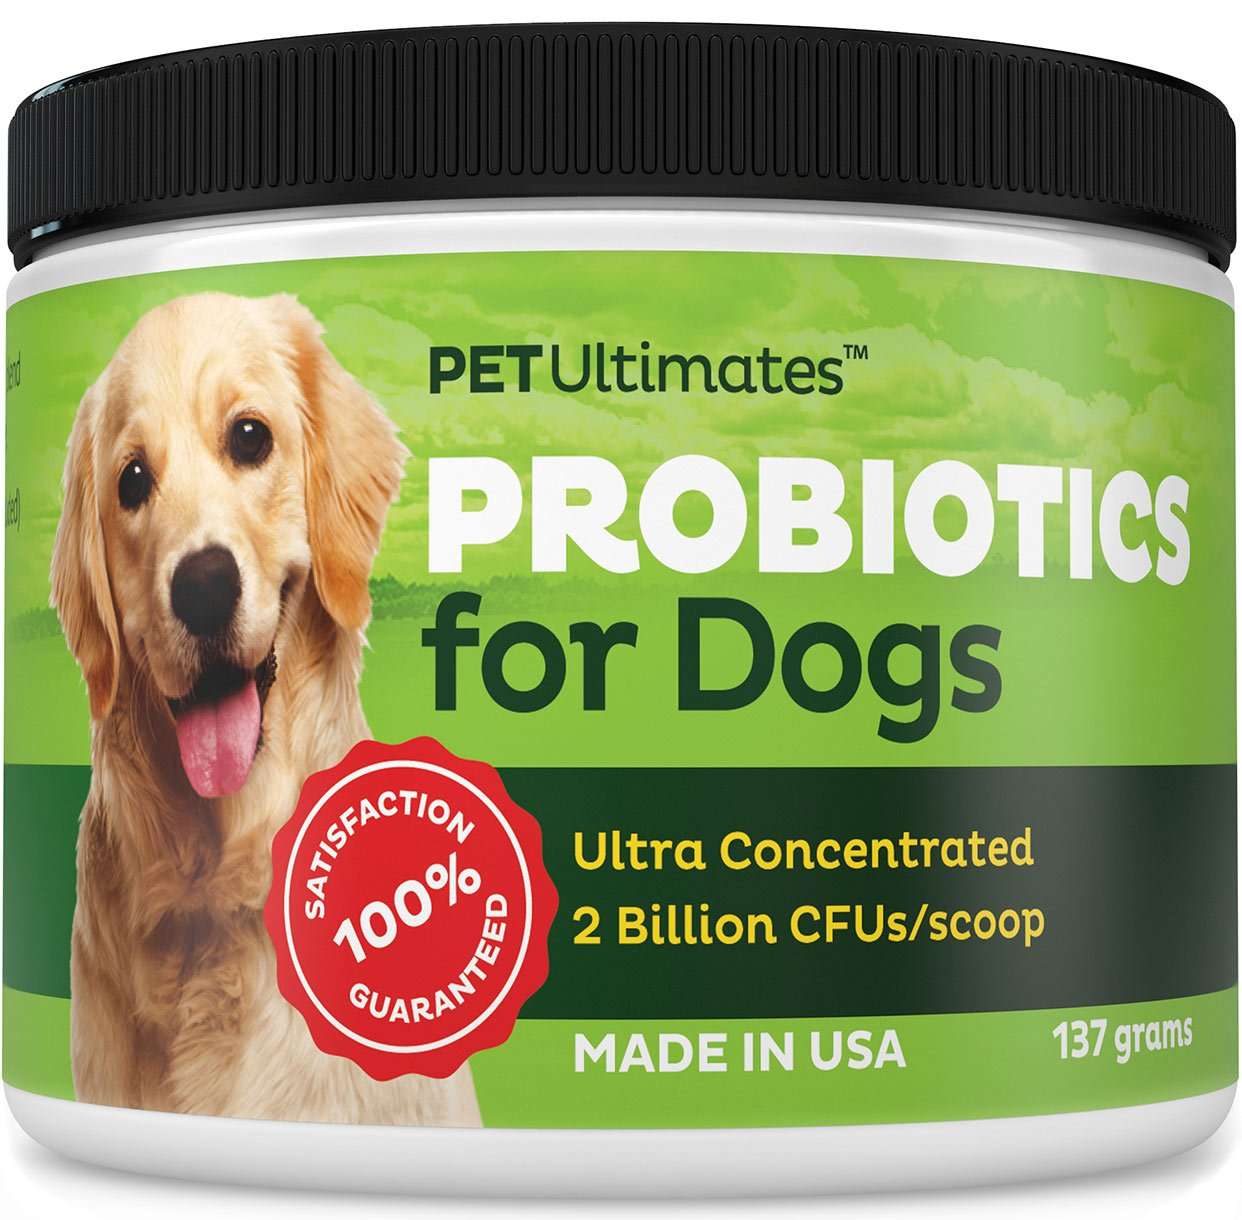 Can You Give Dogs Pepto Bismol For Upset Stomach